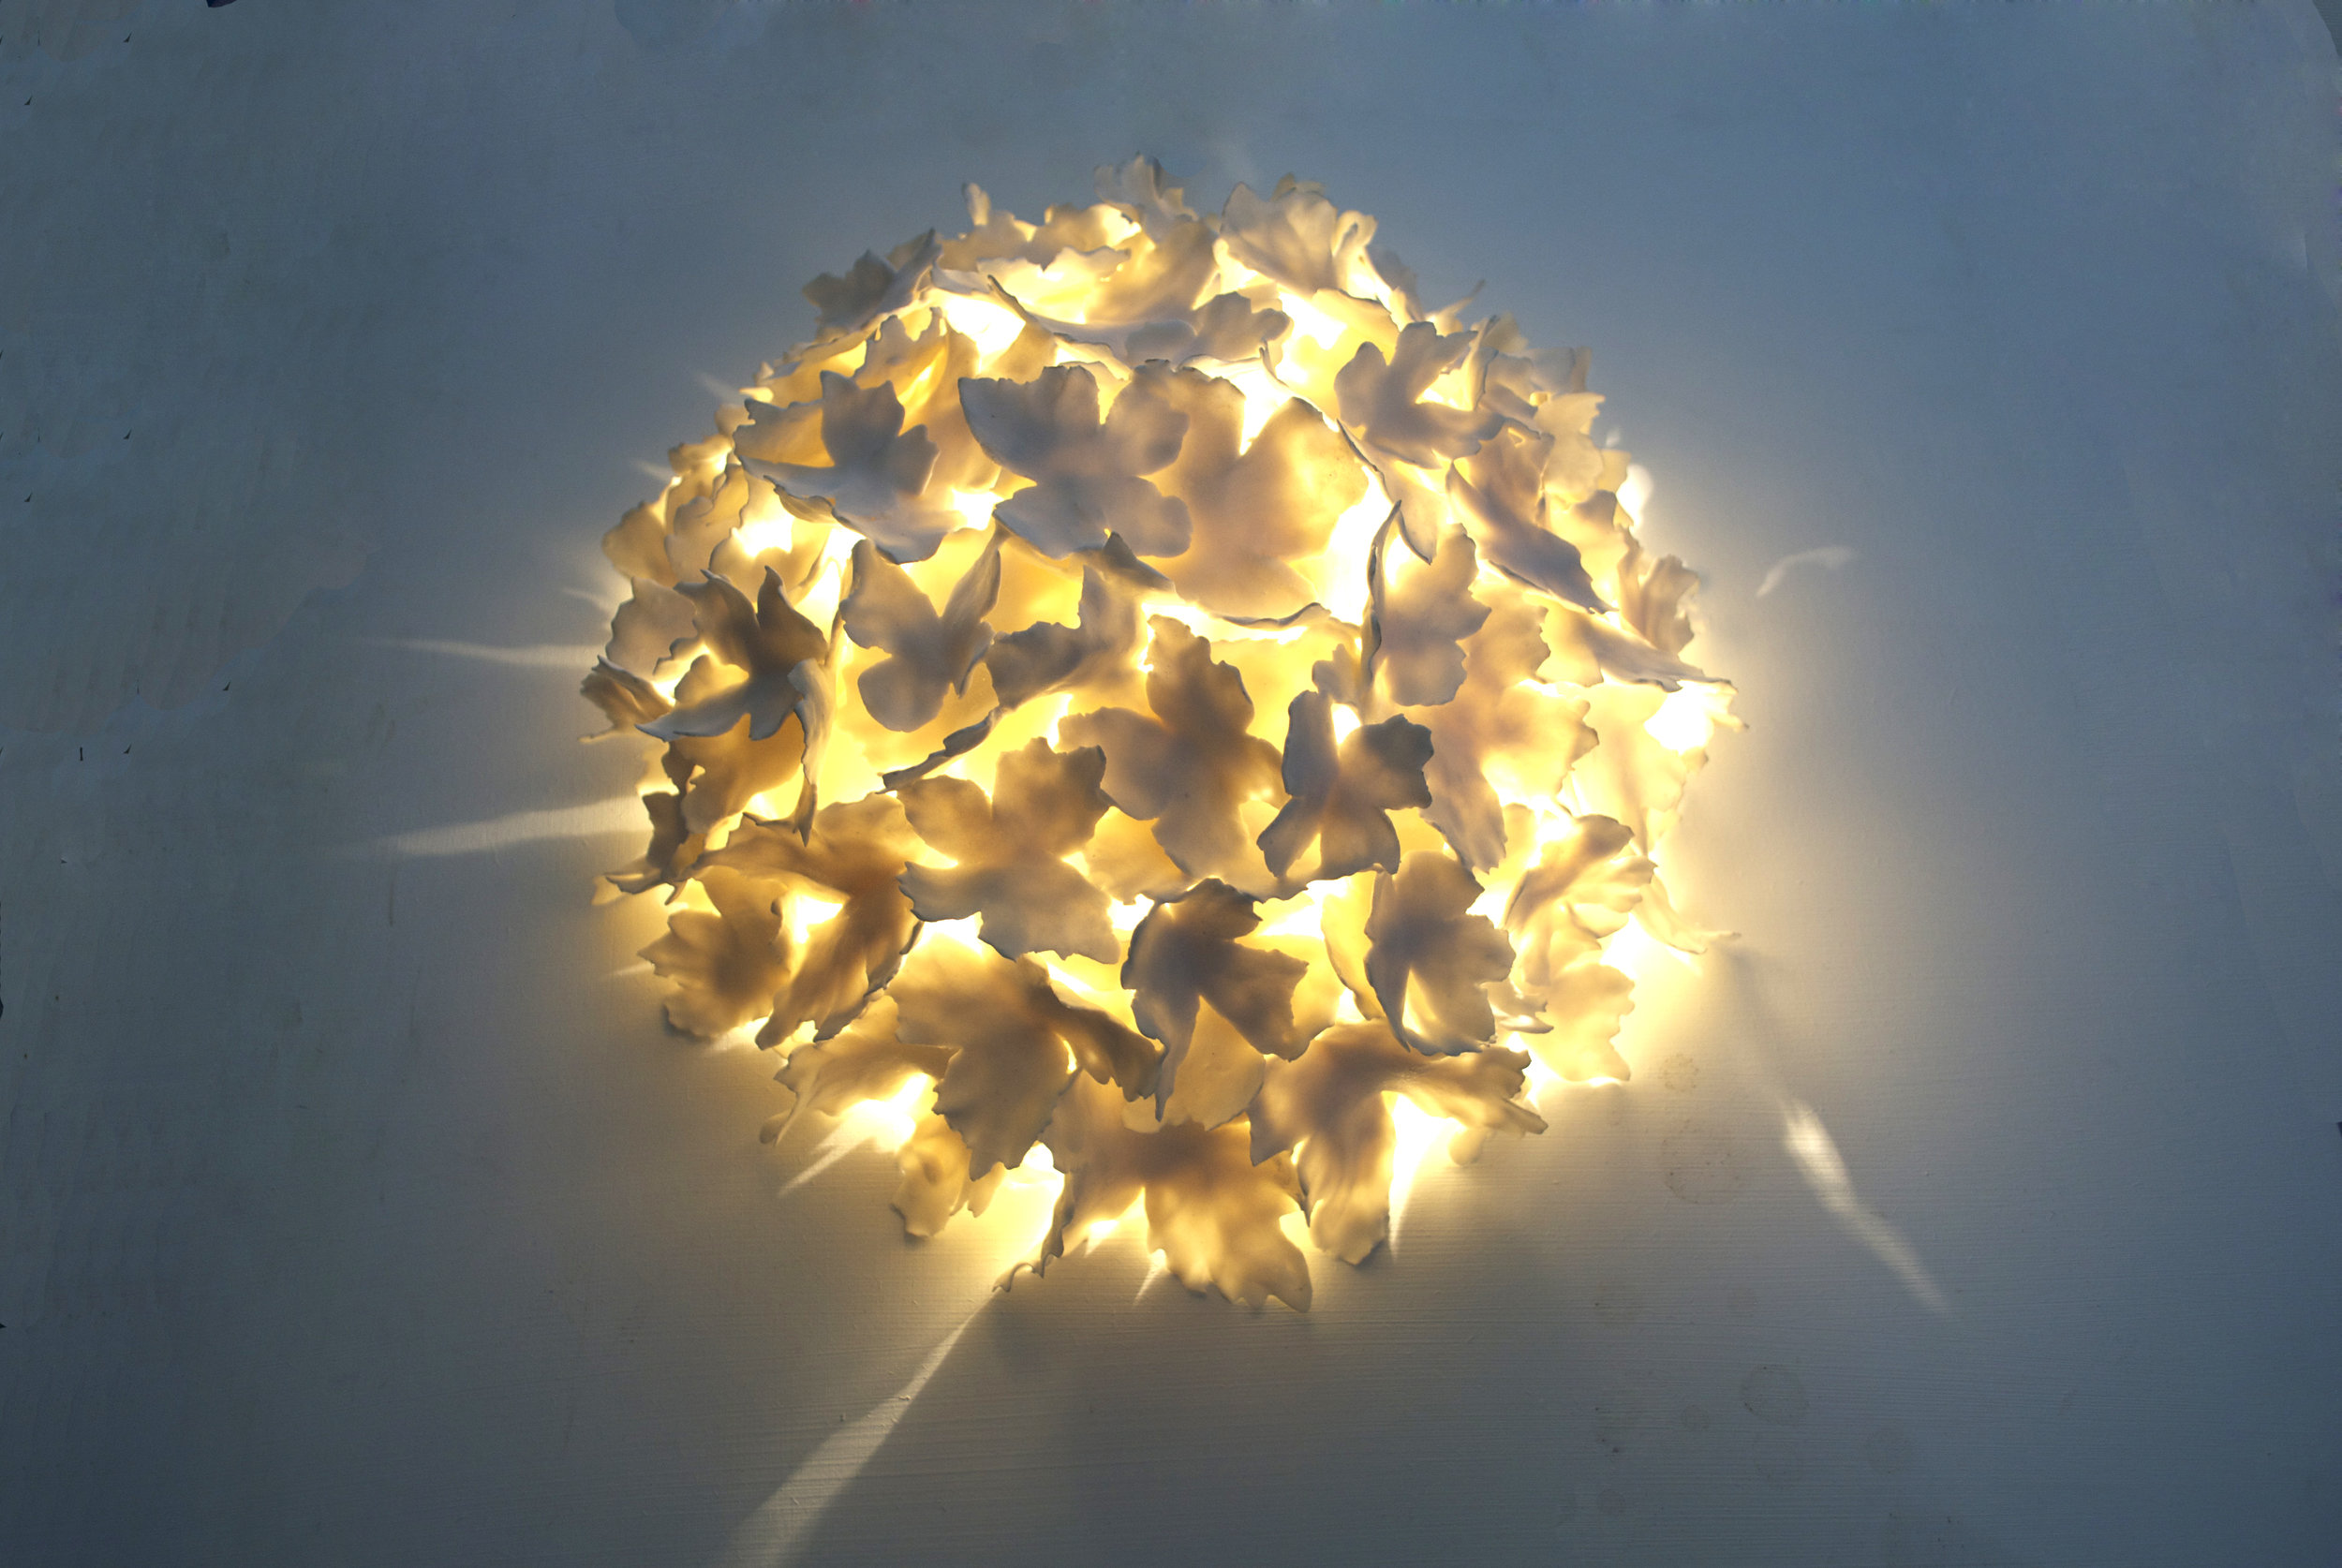 This domed version was made to sit on a wall, fully surrounding the light source and creating bursts of light that shot out of the sides. This version can also be used on ceilings. Approximately 400mm diameter. £800 plus vat.